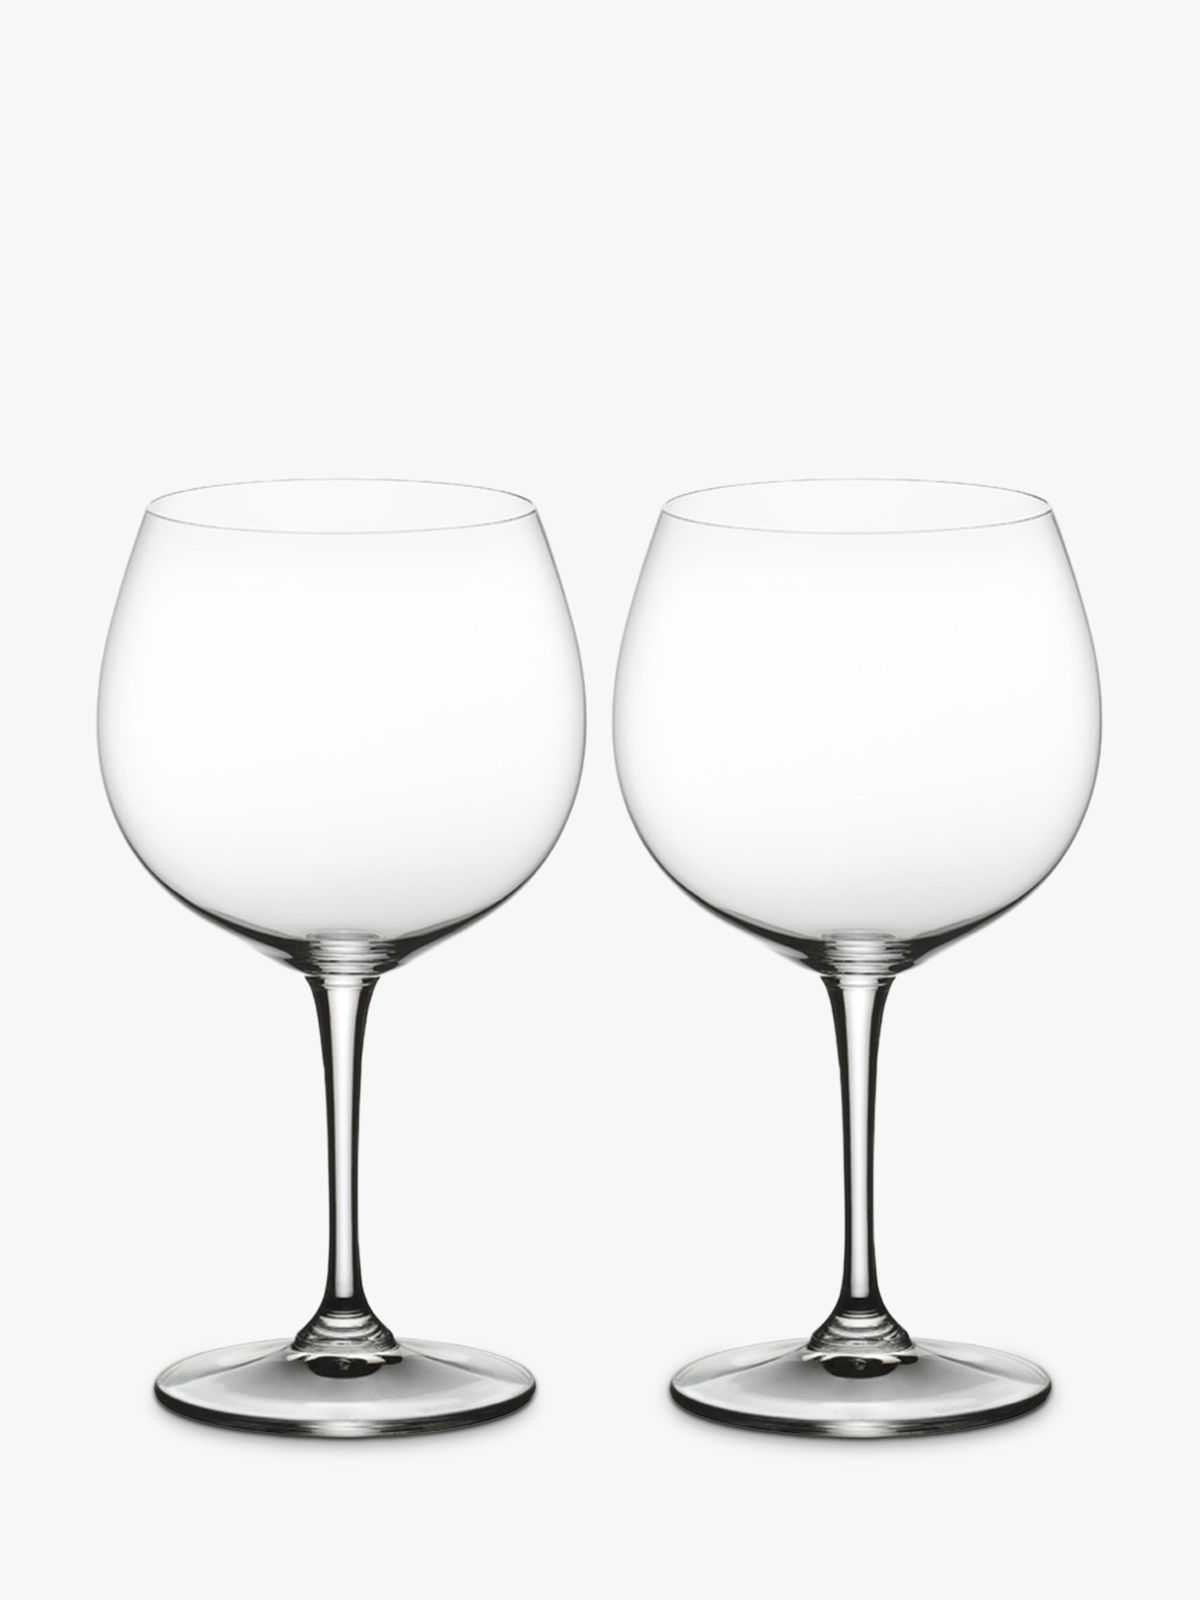 Chardonnay Wine Glass Riedel Vinum Oaked Chardonnay Wine Glass Clear Set Of 2